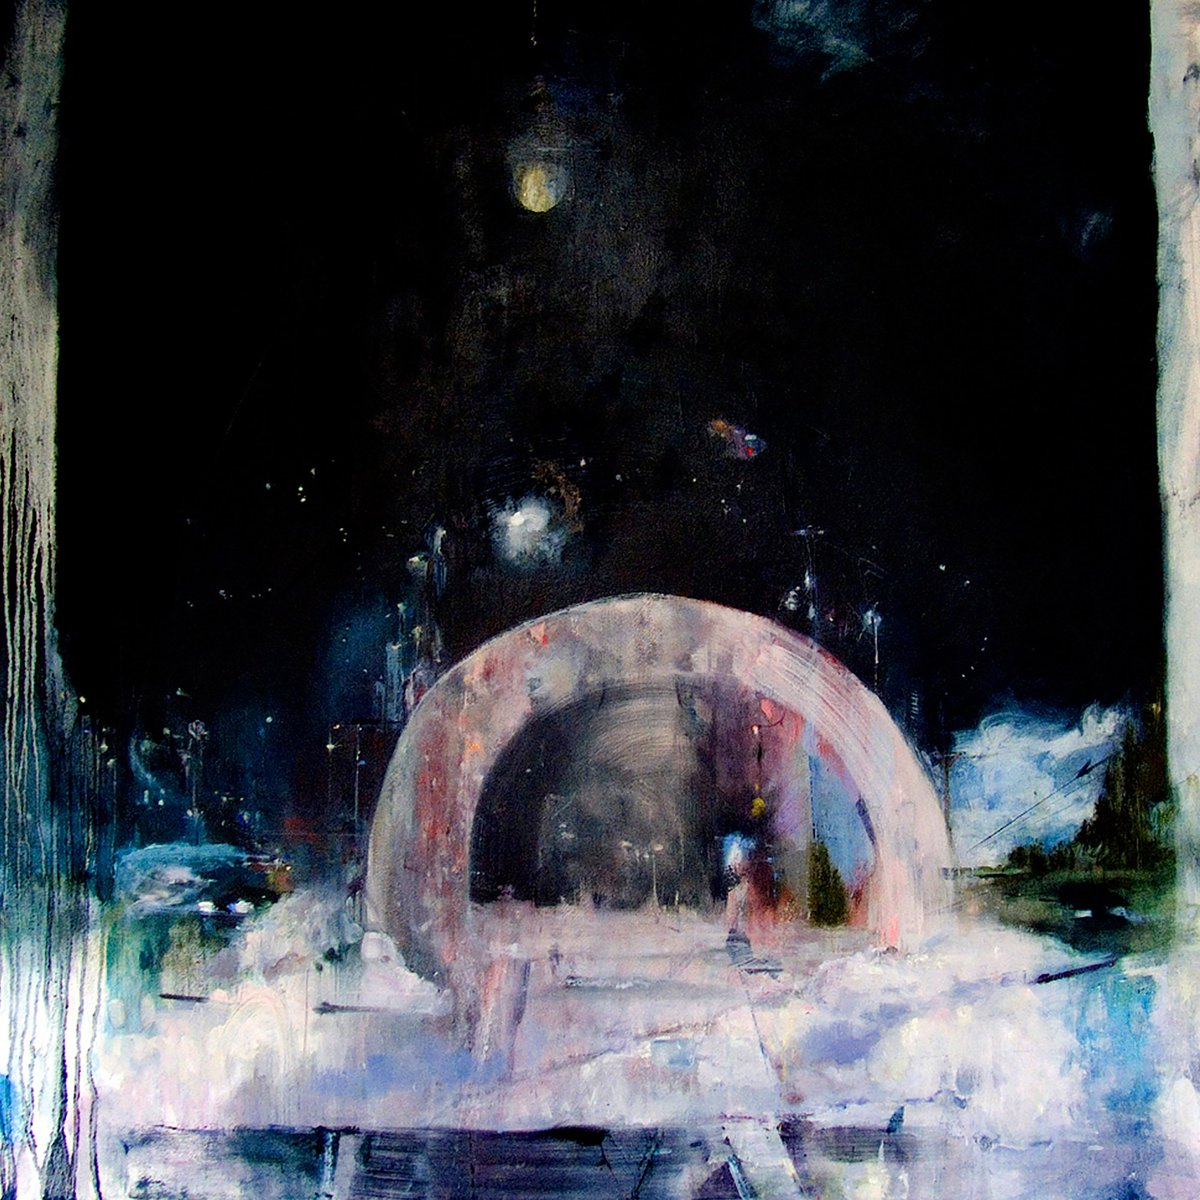 .@ohdaughter's album 'Not to Disappear' is out! Download: https://t.co/B6seHl1p68 @Spotify: https://t.co/4JeVDLfvDL https://t.co/eXtiuLxmkR